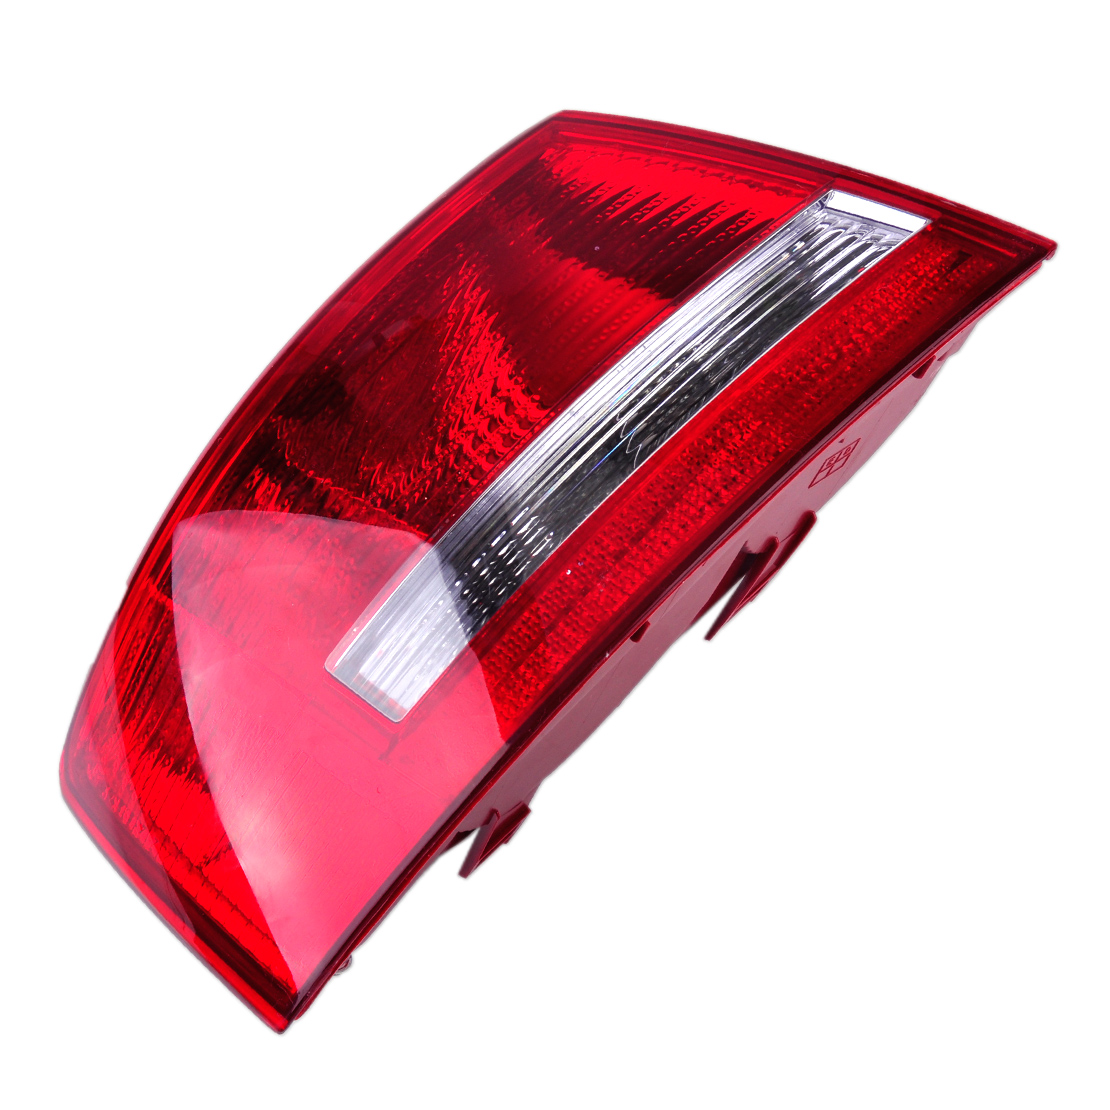 beler Car Left Tail Light Assembly Lamp Housing without Bulb 4F5945095L 4F5945095D for Audi A6 /A6 Quattro Sedan 2005 2006 -2008 thermostat housing assembly yu3z8a586aa 902204 yu3z8a586 97jm9k478ae for d explore r 4 0l v6 for d range r